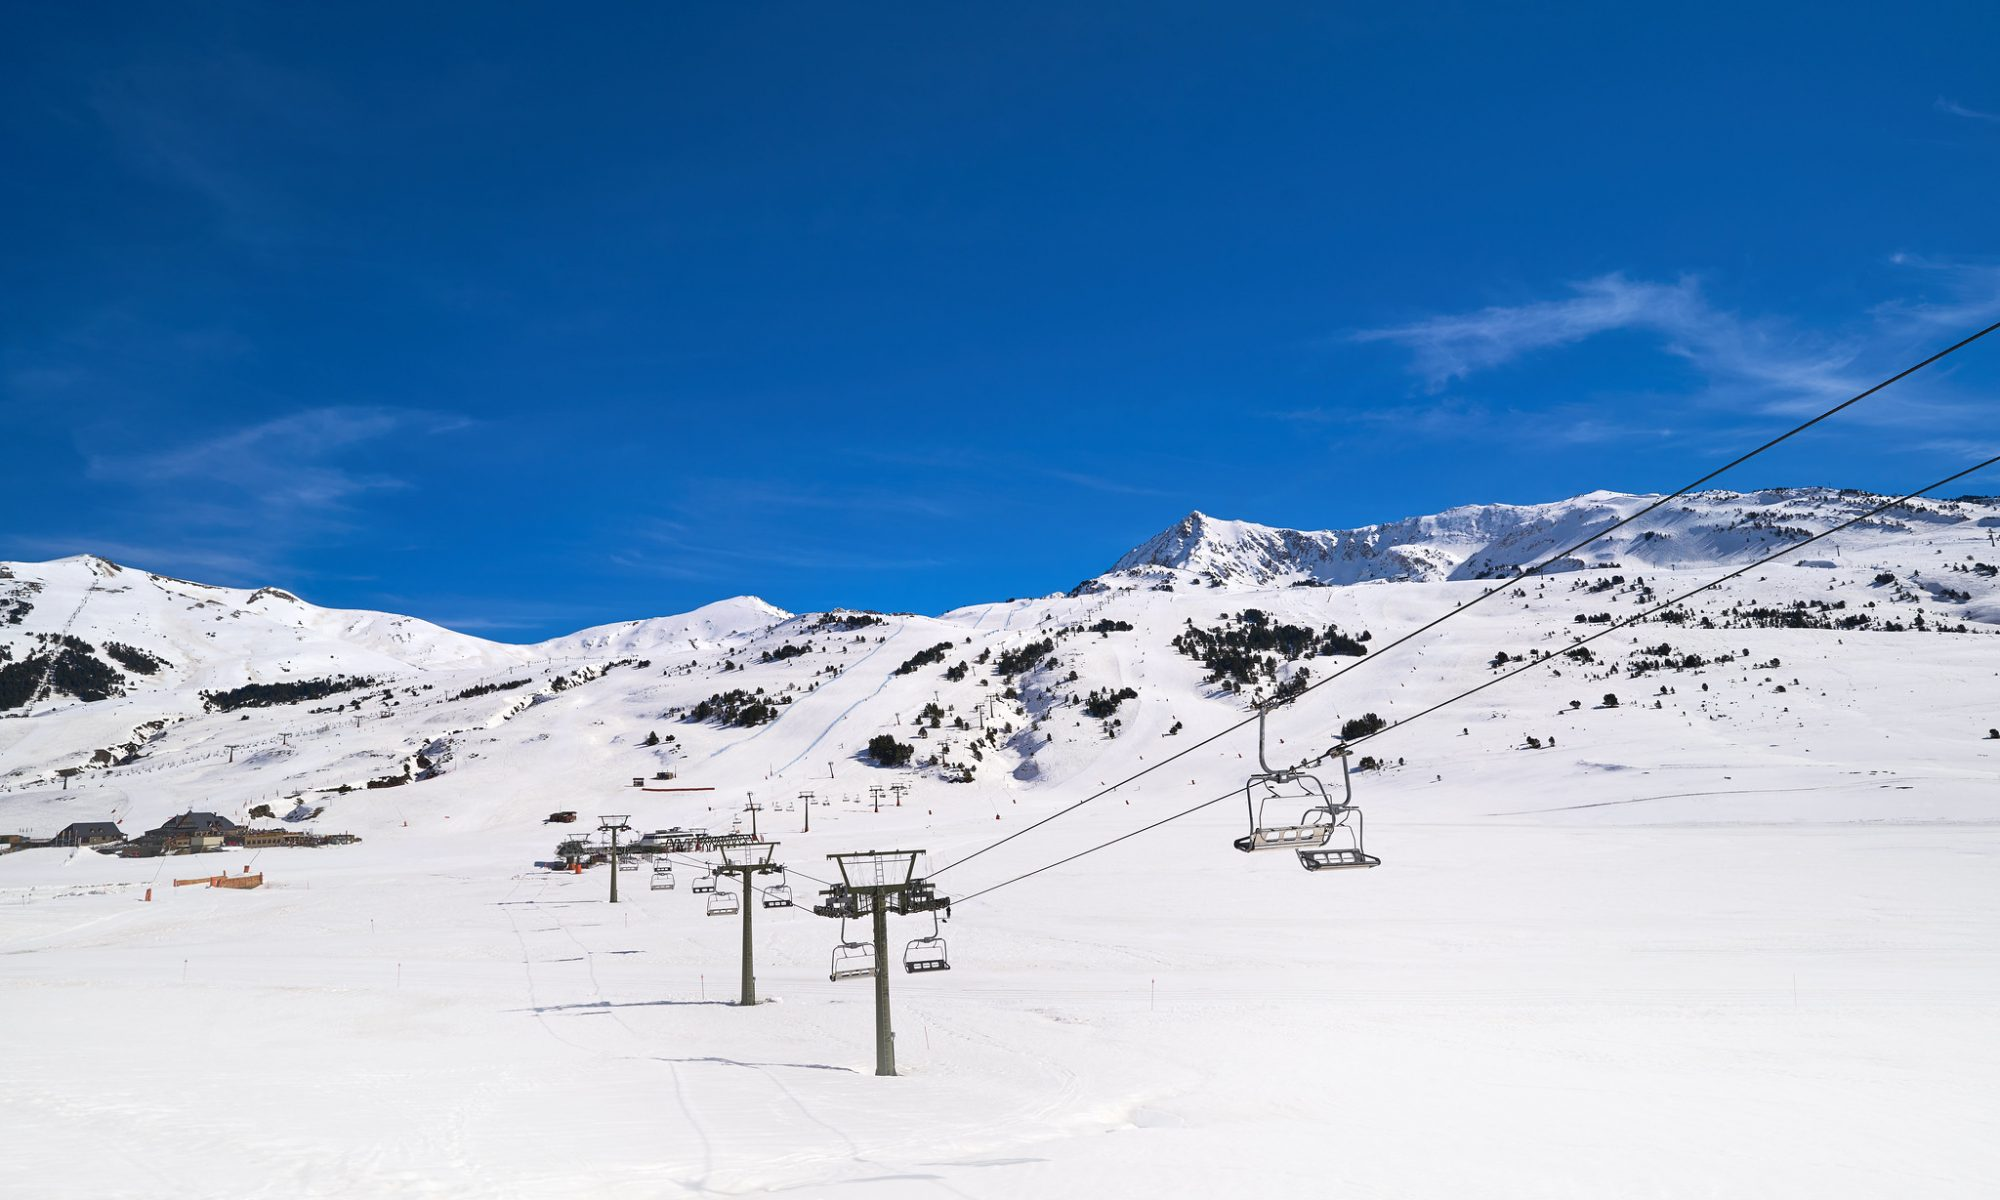 The beautiful landscape of Baqueira ski resort, a ideal spot for skiing in Spain.